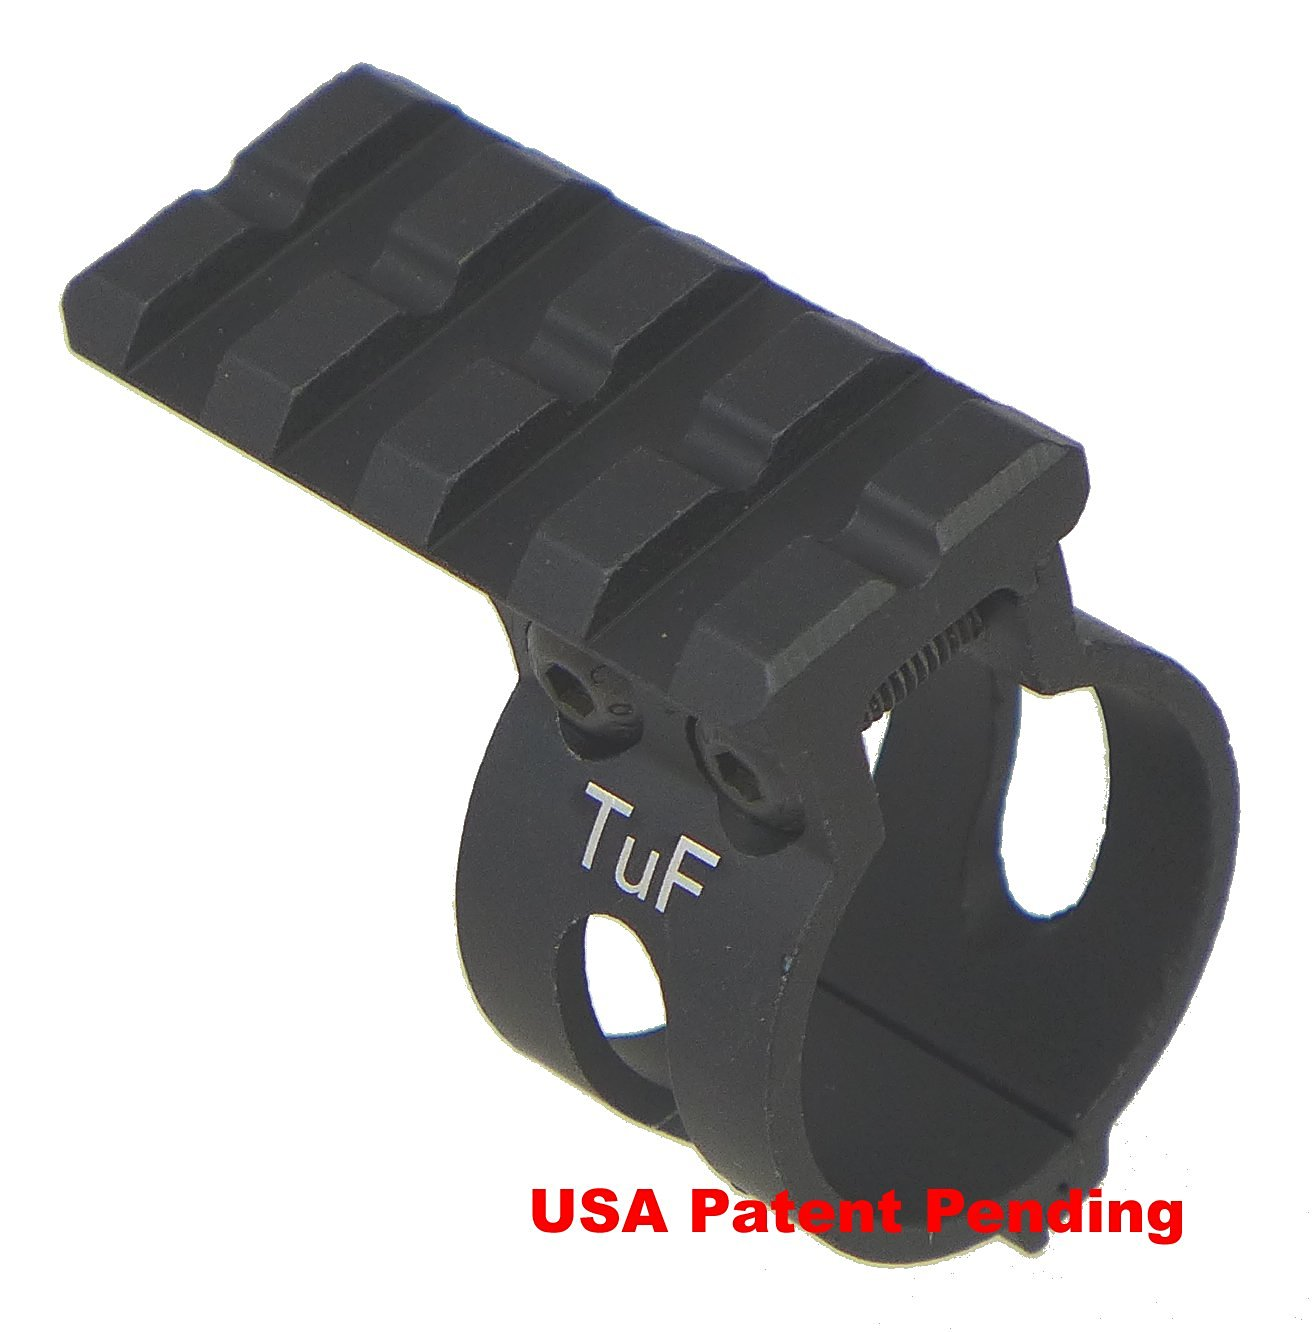 "TufForce 1"" Tube Ring or Mount, MT-25T4B, Clamp on Scope, Shotgun 1"" barrel or Magazine tube, patent granted"